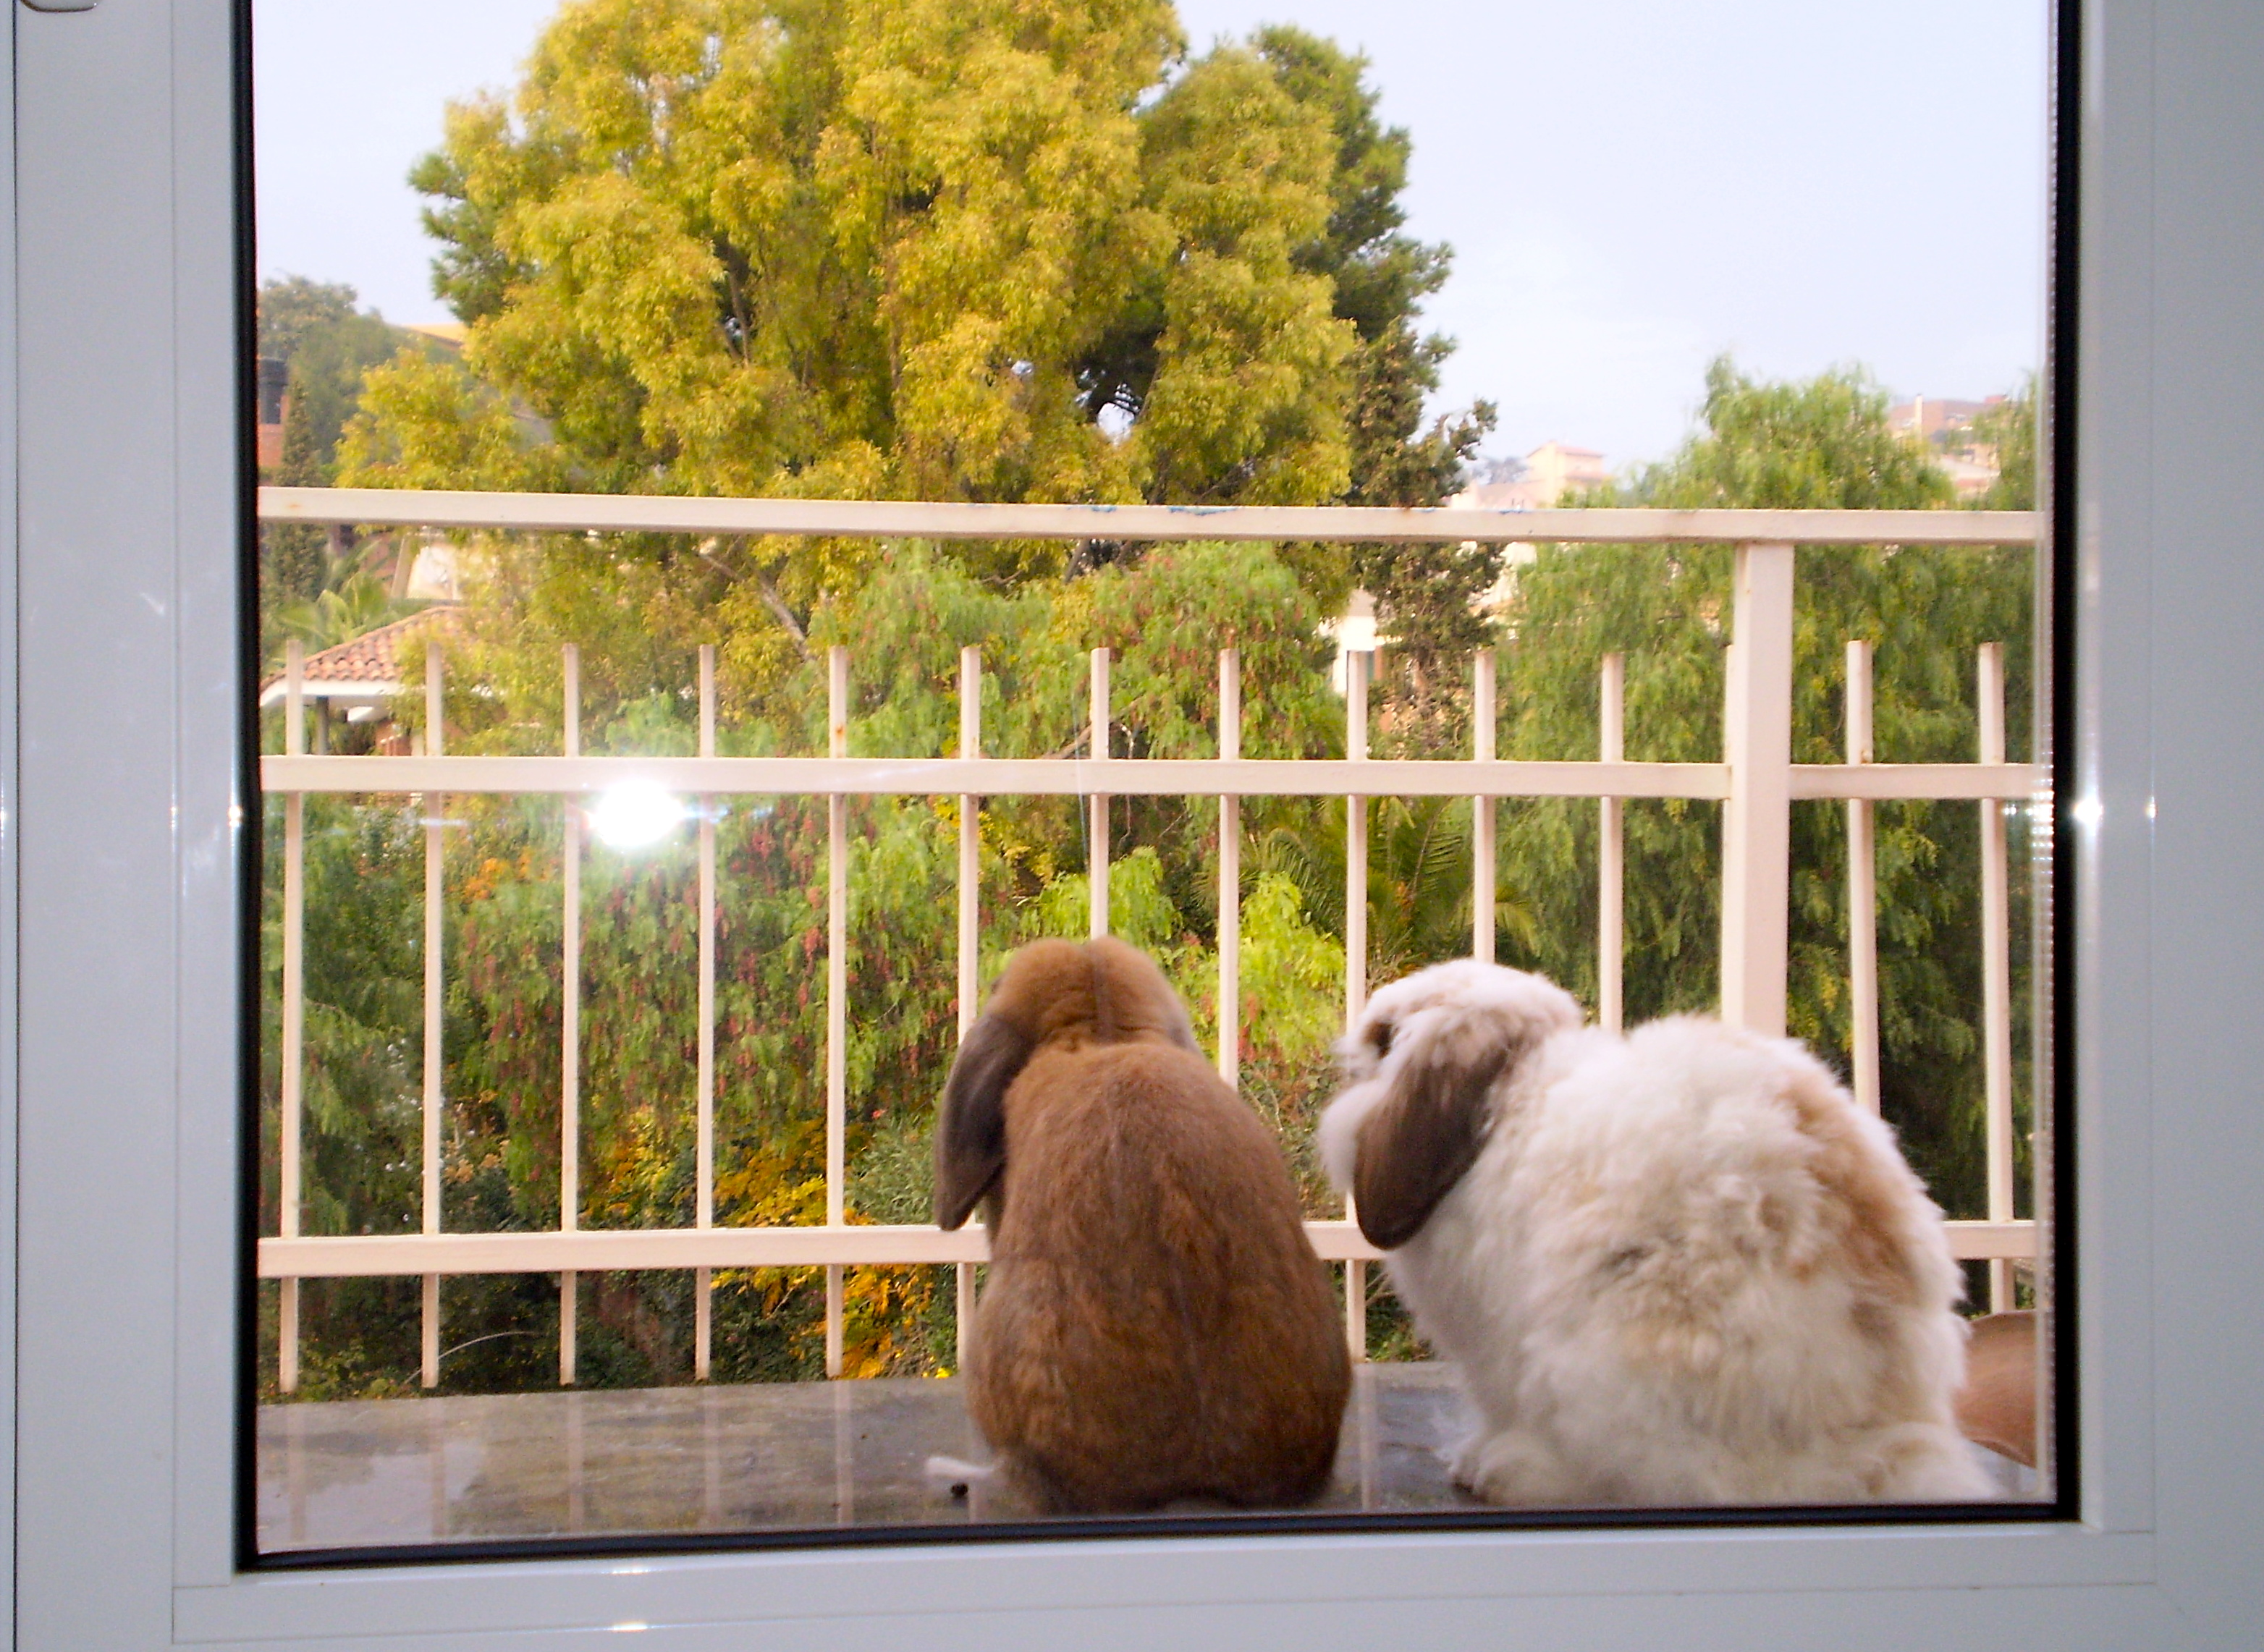 Bunnies day dreaming.... photo